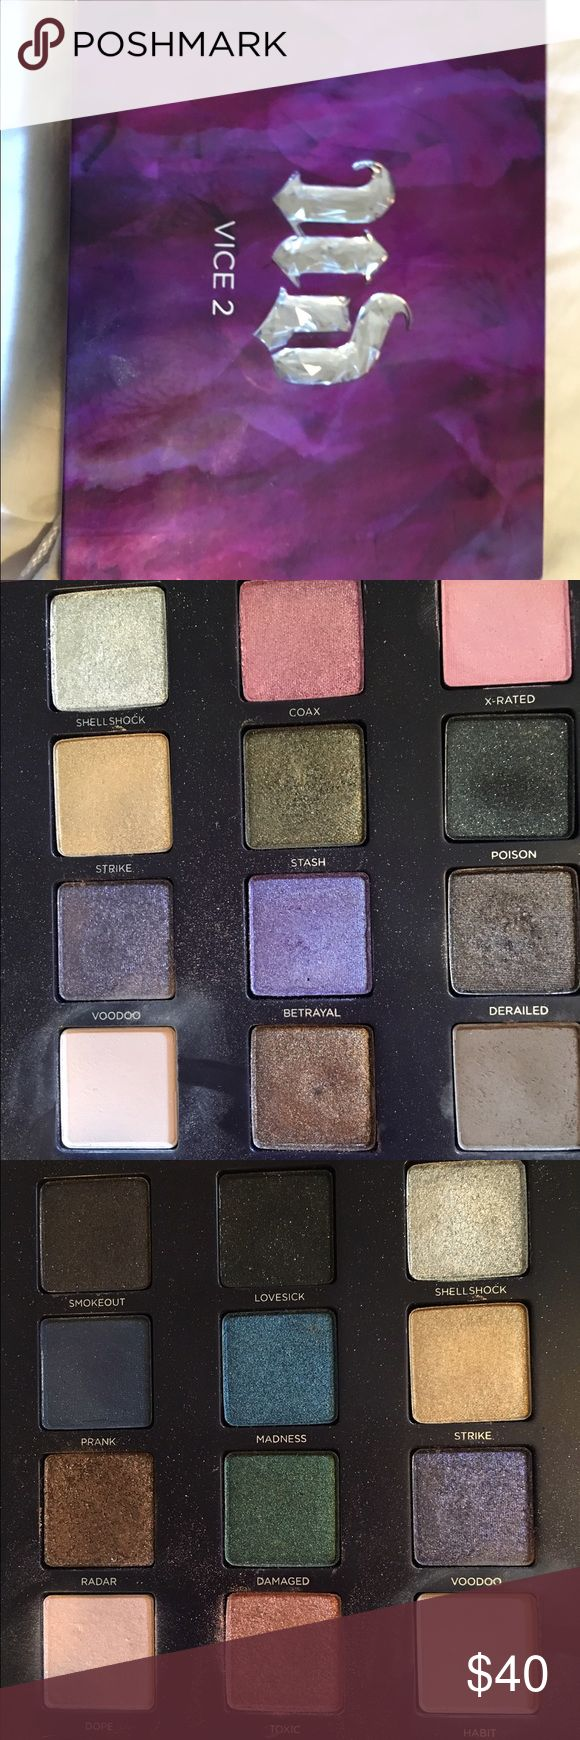 Urban Decay Vice 2 Pallete I'm selling my Urban Decay vice 2 palette! Rarely used it, just not the colors for me. Urban decay shadows are all awesome and such high quality! Urban Decay Makeup Eyeshadow